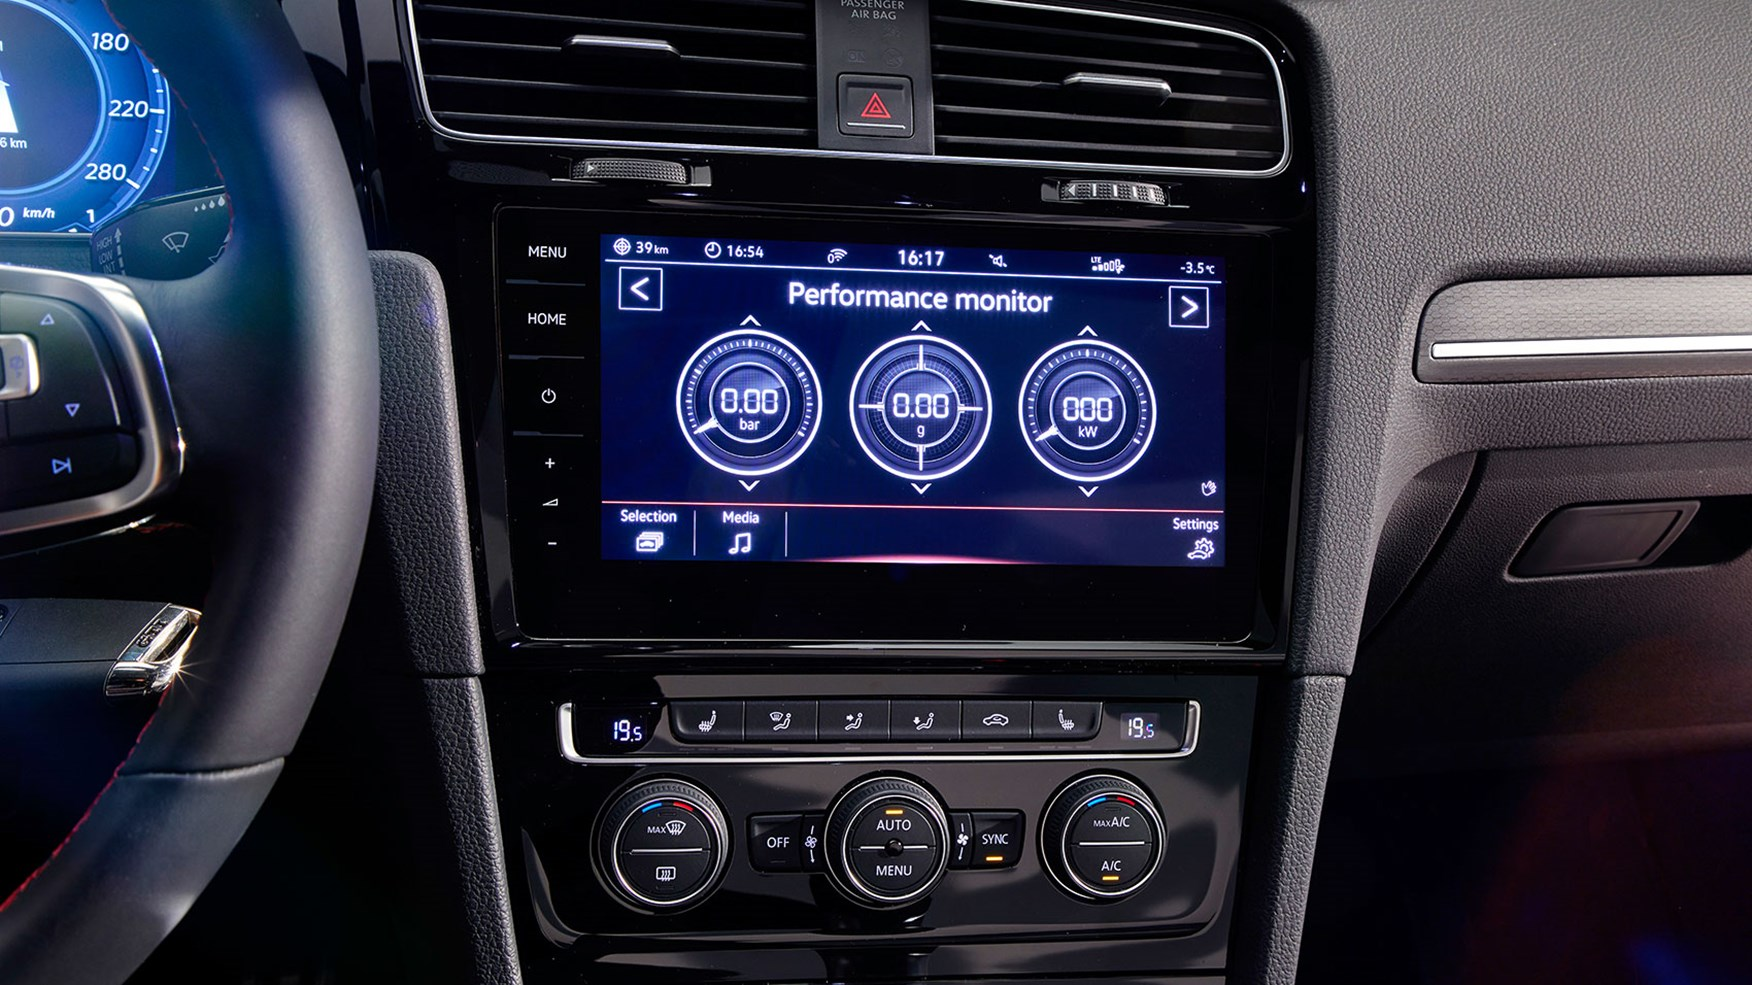 Vw Thing For Sale >> VW Golf GTI 2017 Mk7 facelift review by CAR Magazine